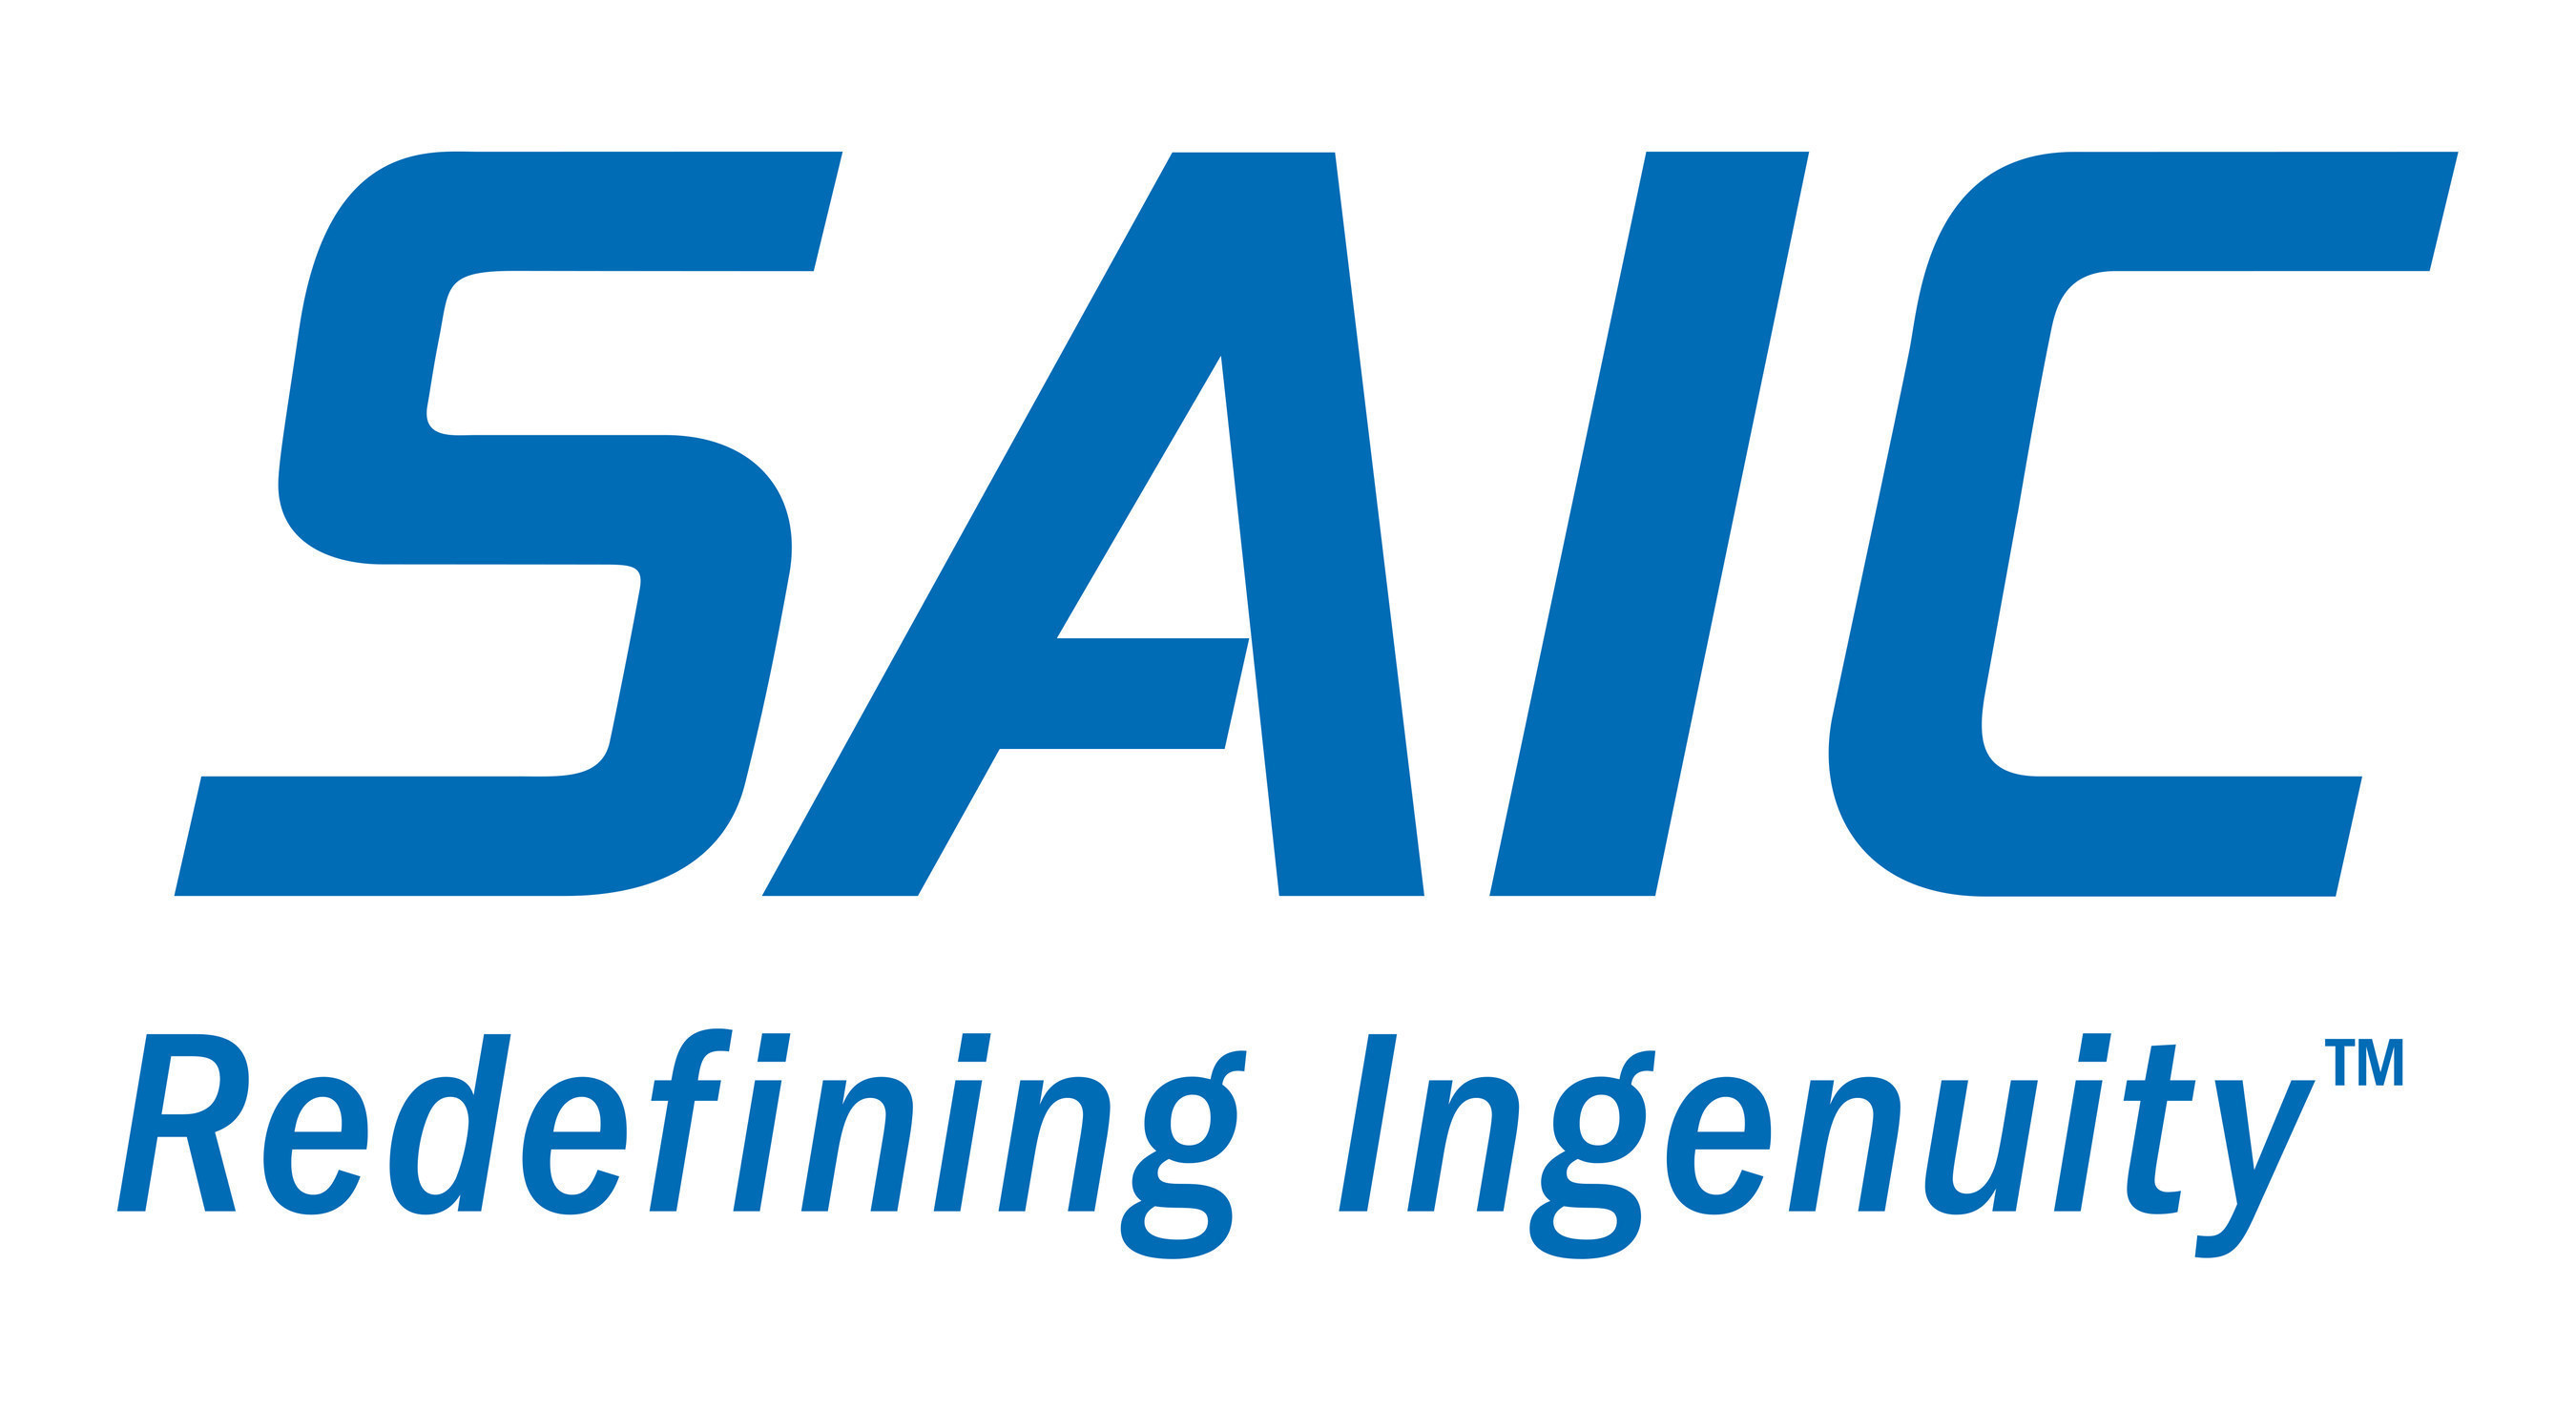 At SAIC, we empower our people to apply their integrity, mission understanding, and creativity to change the way innovation happens.